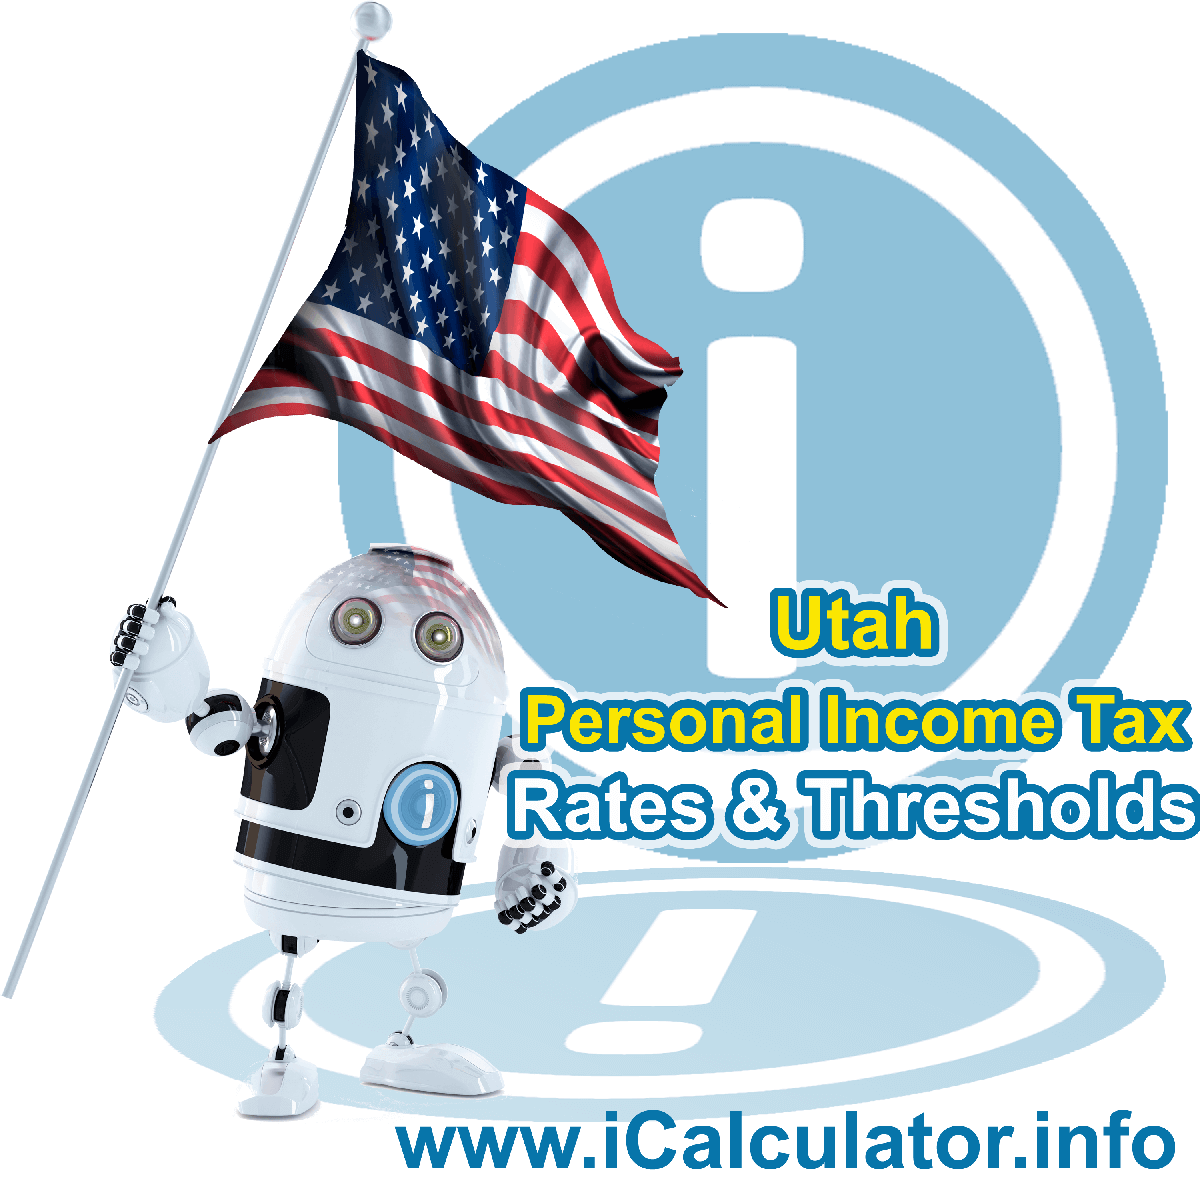 Utah State Tax Tables 2019. This image displays details of the Utah State Tax Tables for the 2019 tax return year which is provided in support of the 2019 US Tax Calculator